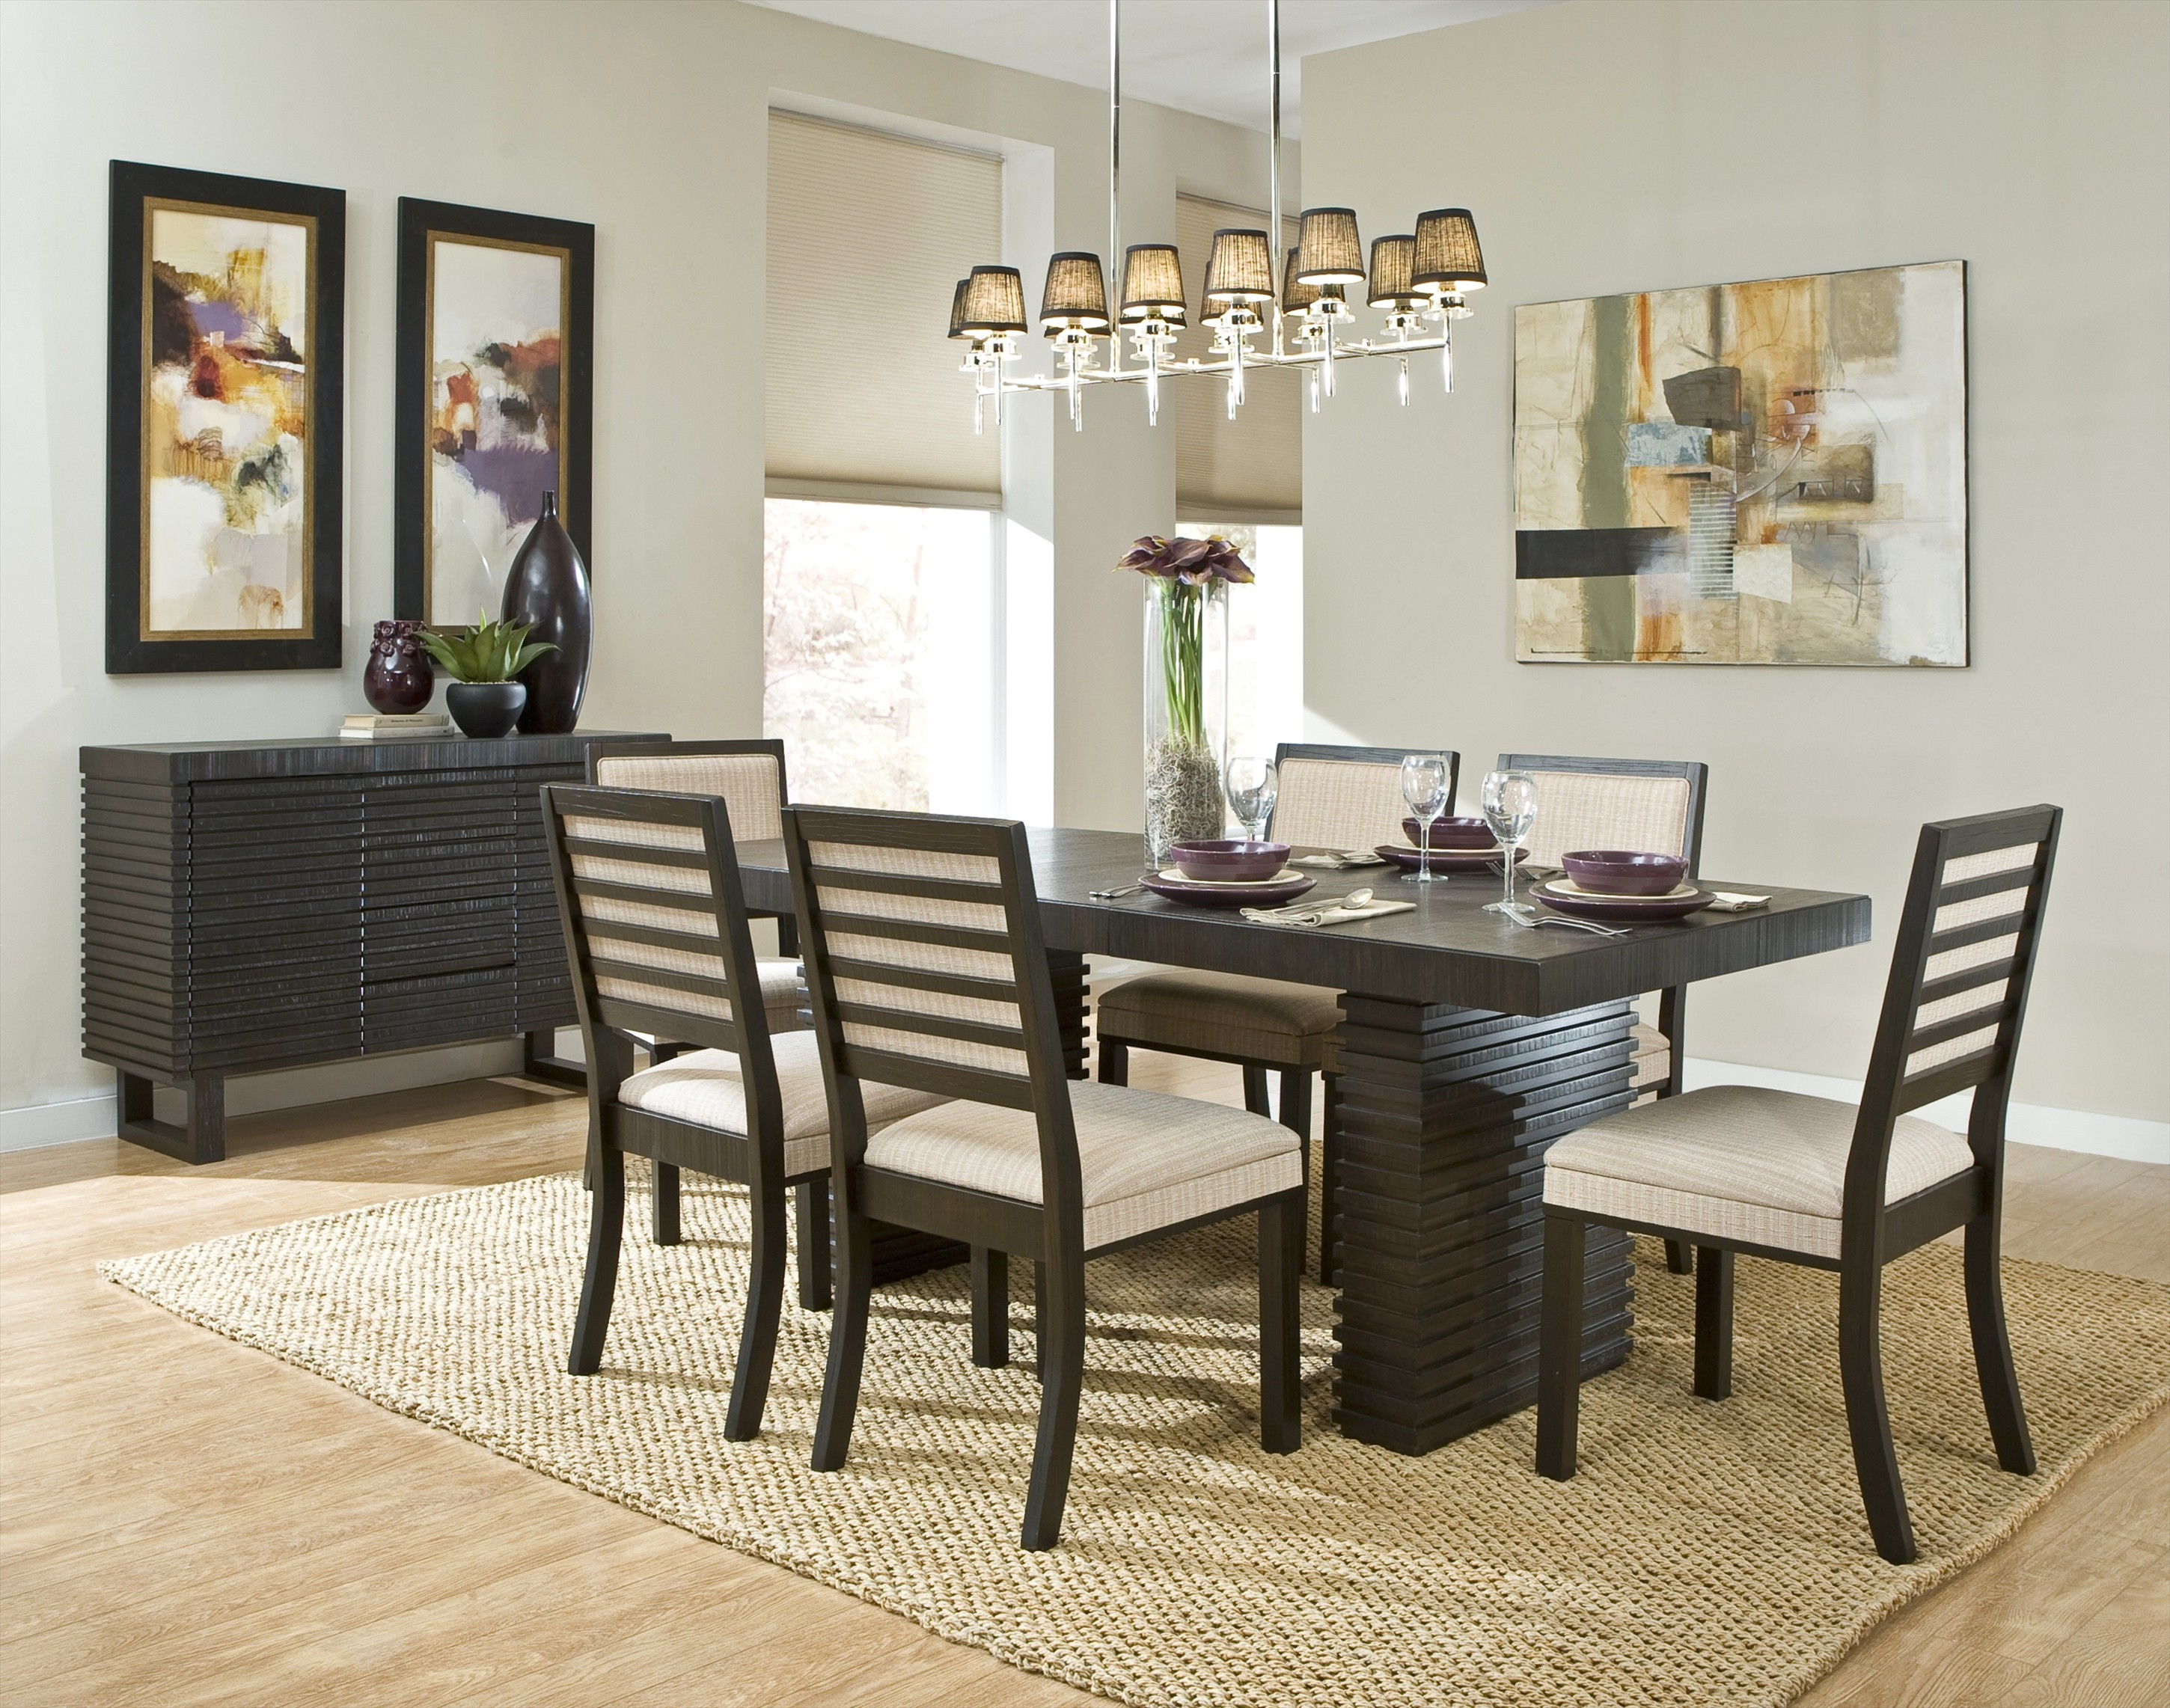 dining room furniture ideas photo - 2